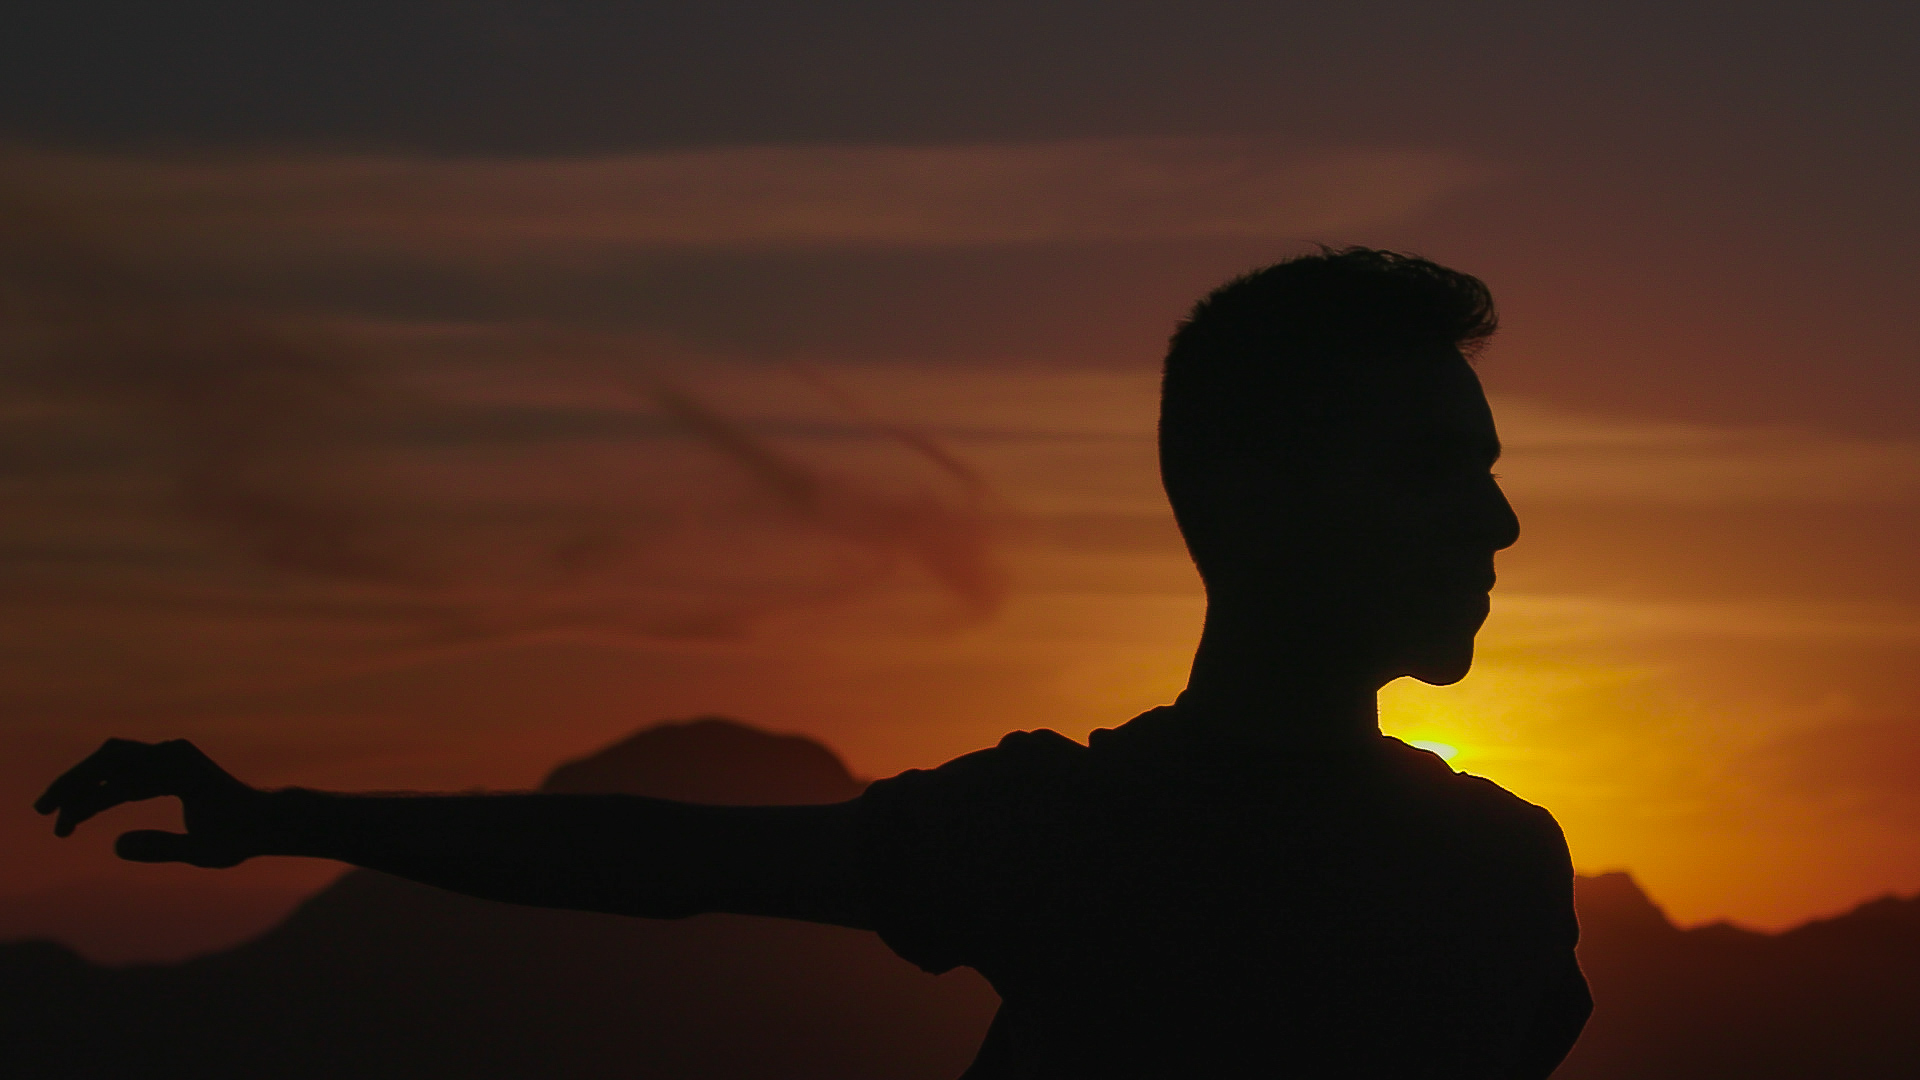 Man dancing in sunset